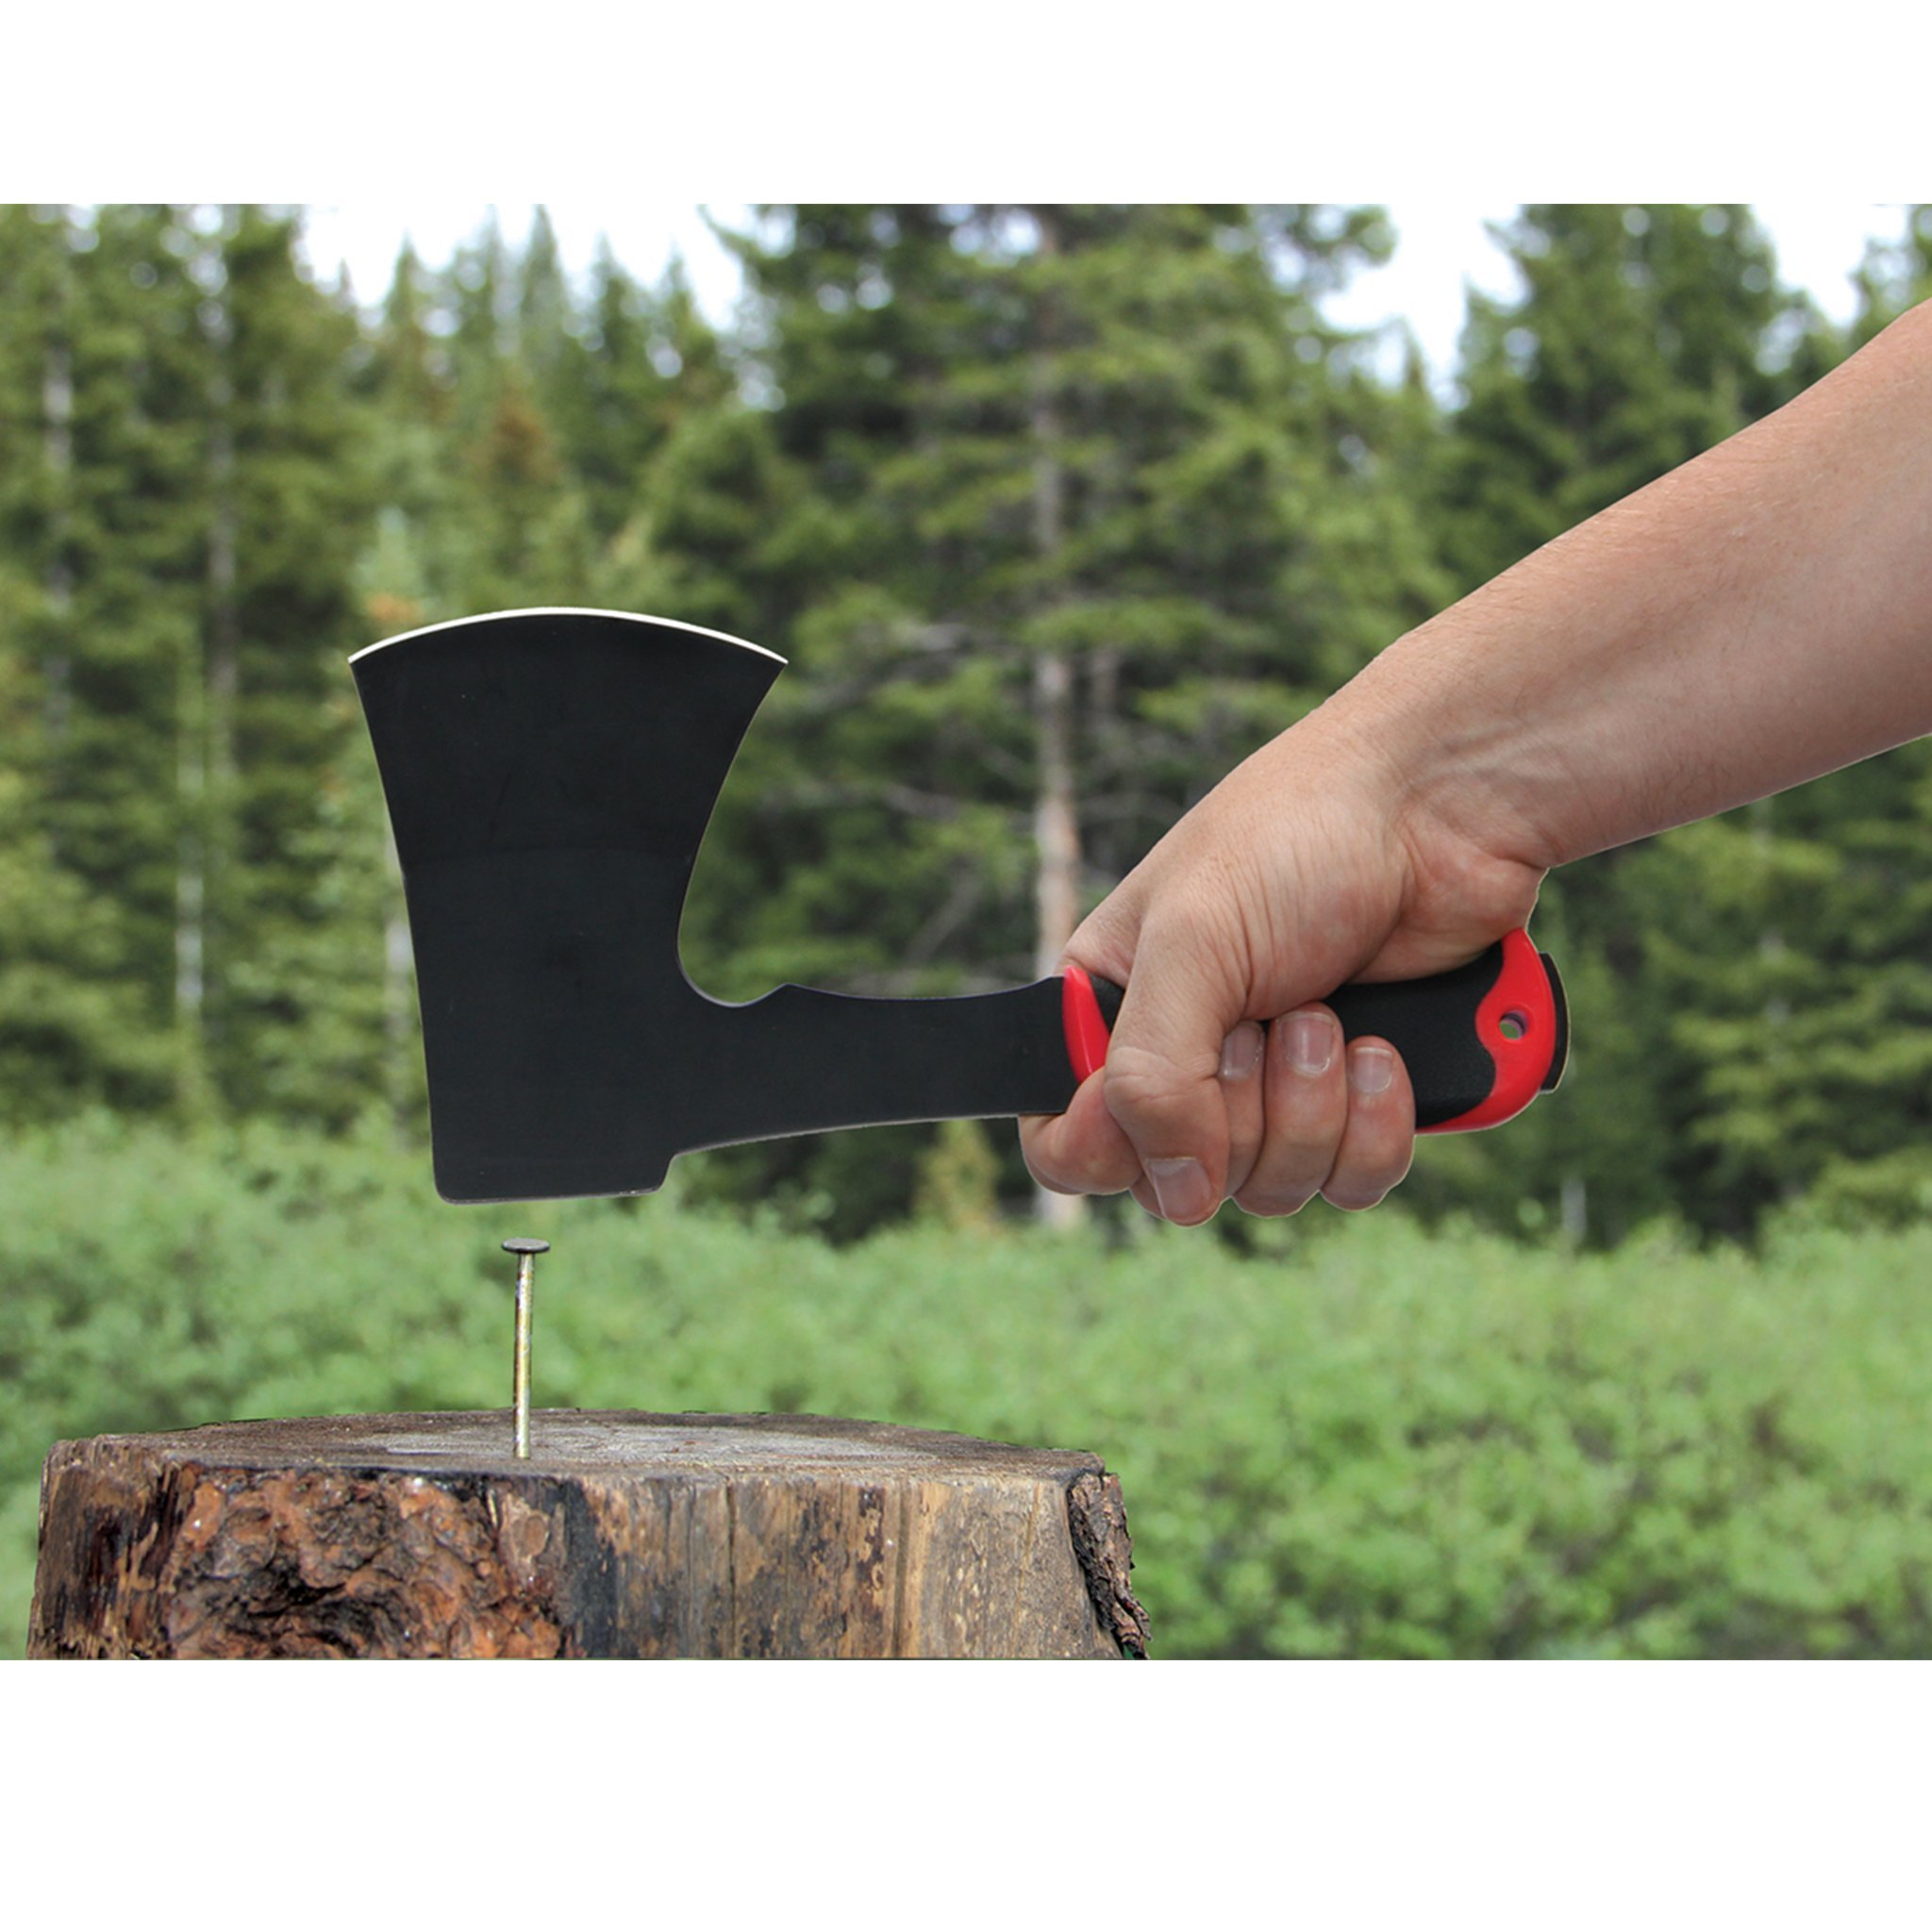 Outdoor Edge WoodDevil, WX-1C, Camp and Hunting Hatchet, Wood Axe by Outdoor Edge (Image #4)